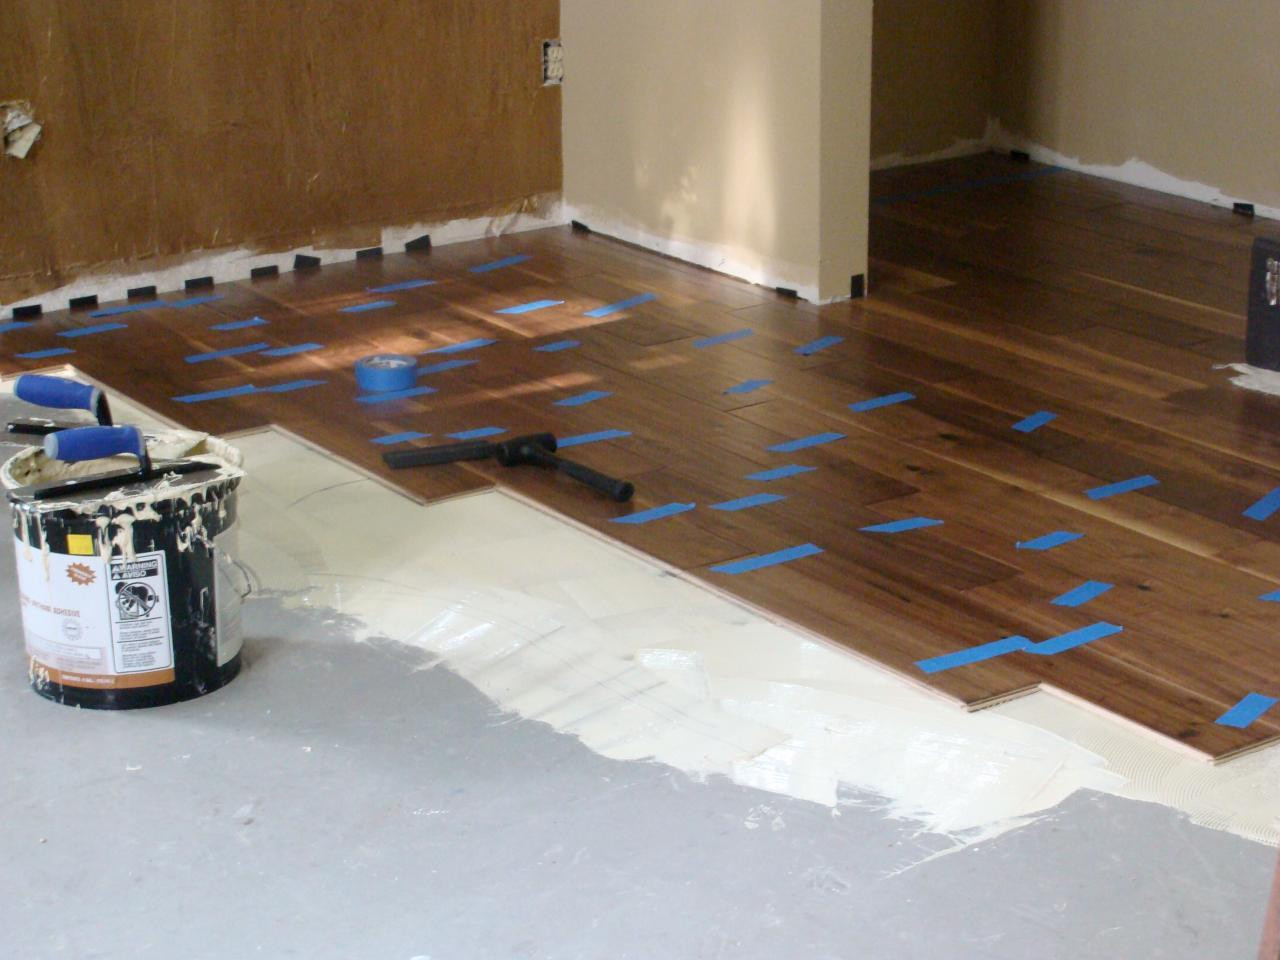 how to install hardwood floor on concrete slab of concrete floor ideas diy inspirational casas de alice piso de for concrete floor ideas diy luxury installing hardwood flooring over concrete how tos